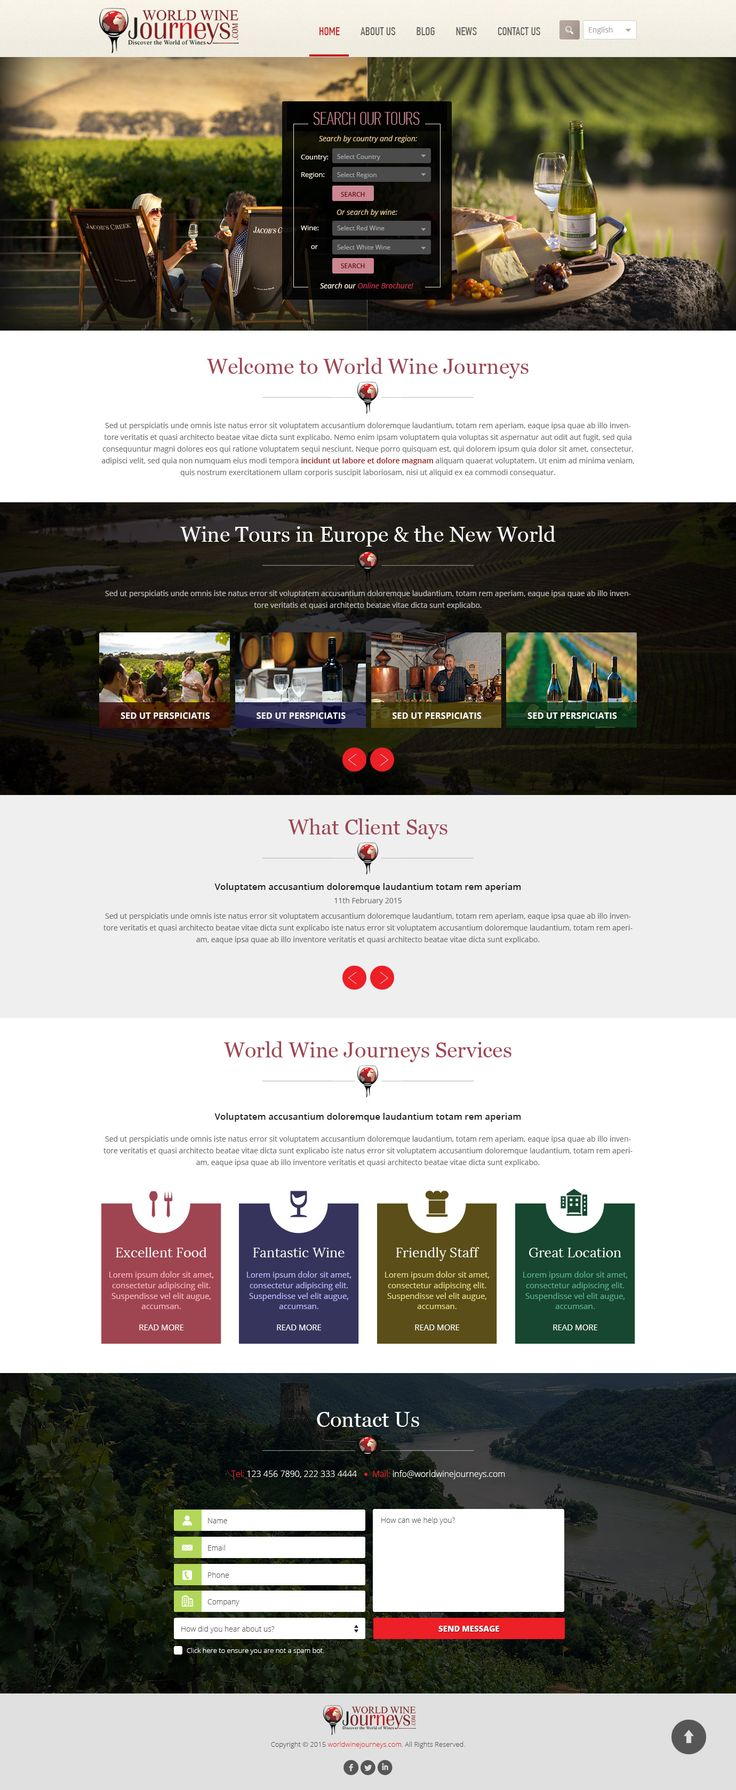 Logo-and-web-design-for-international-wine-tours-company